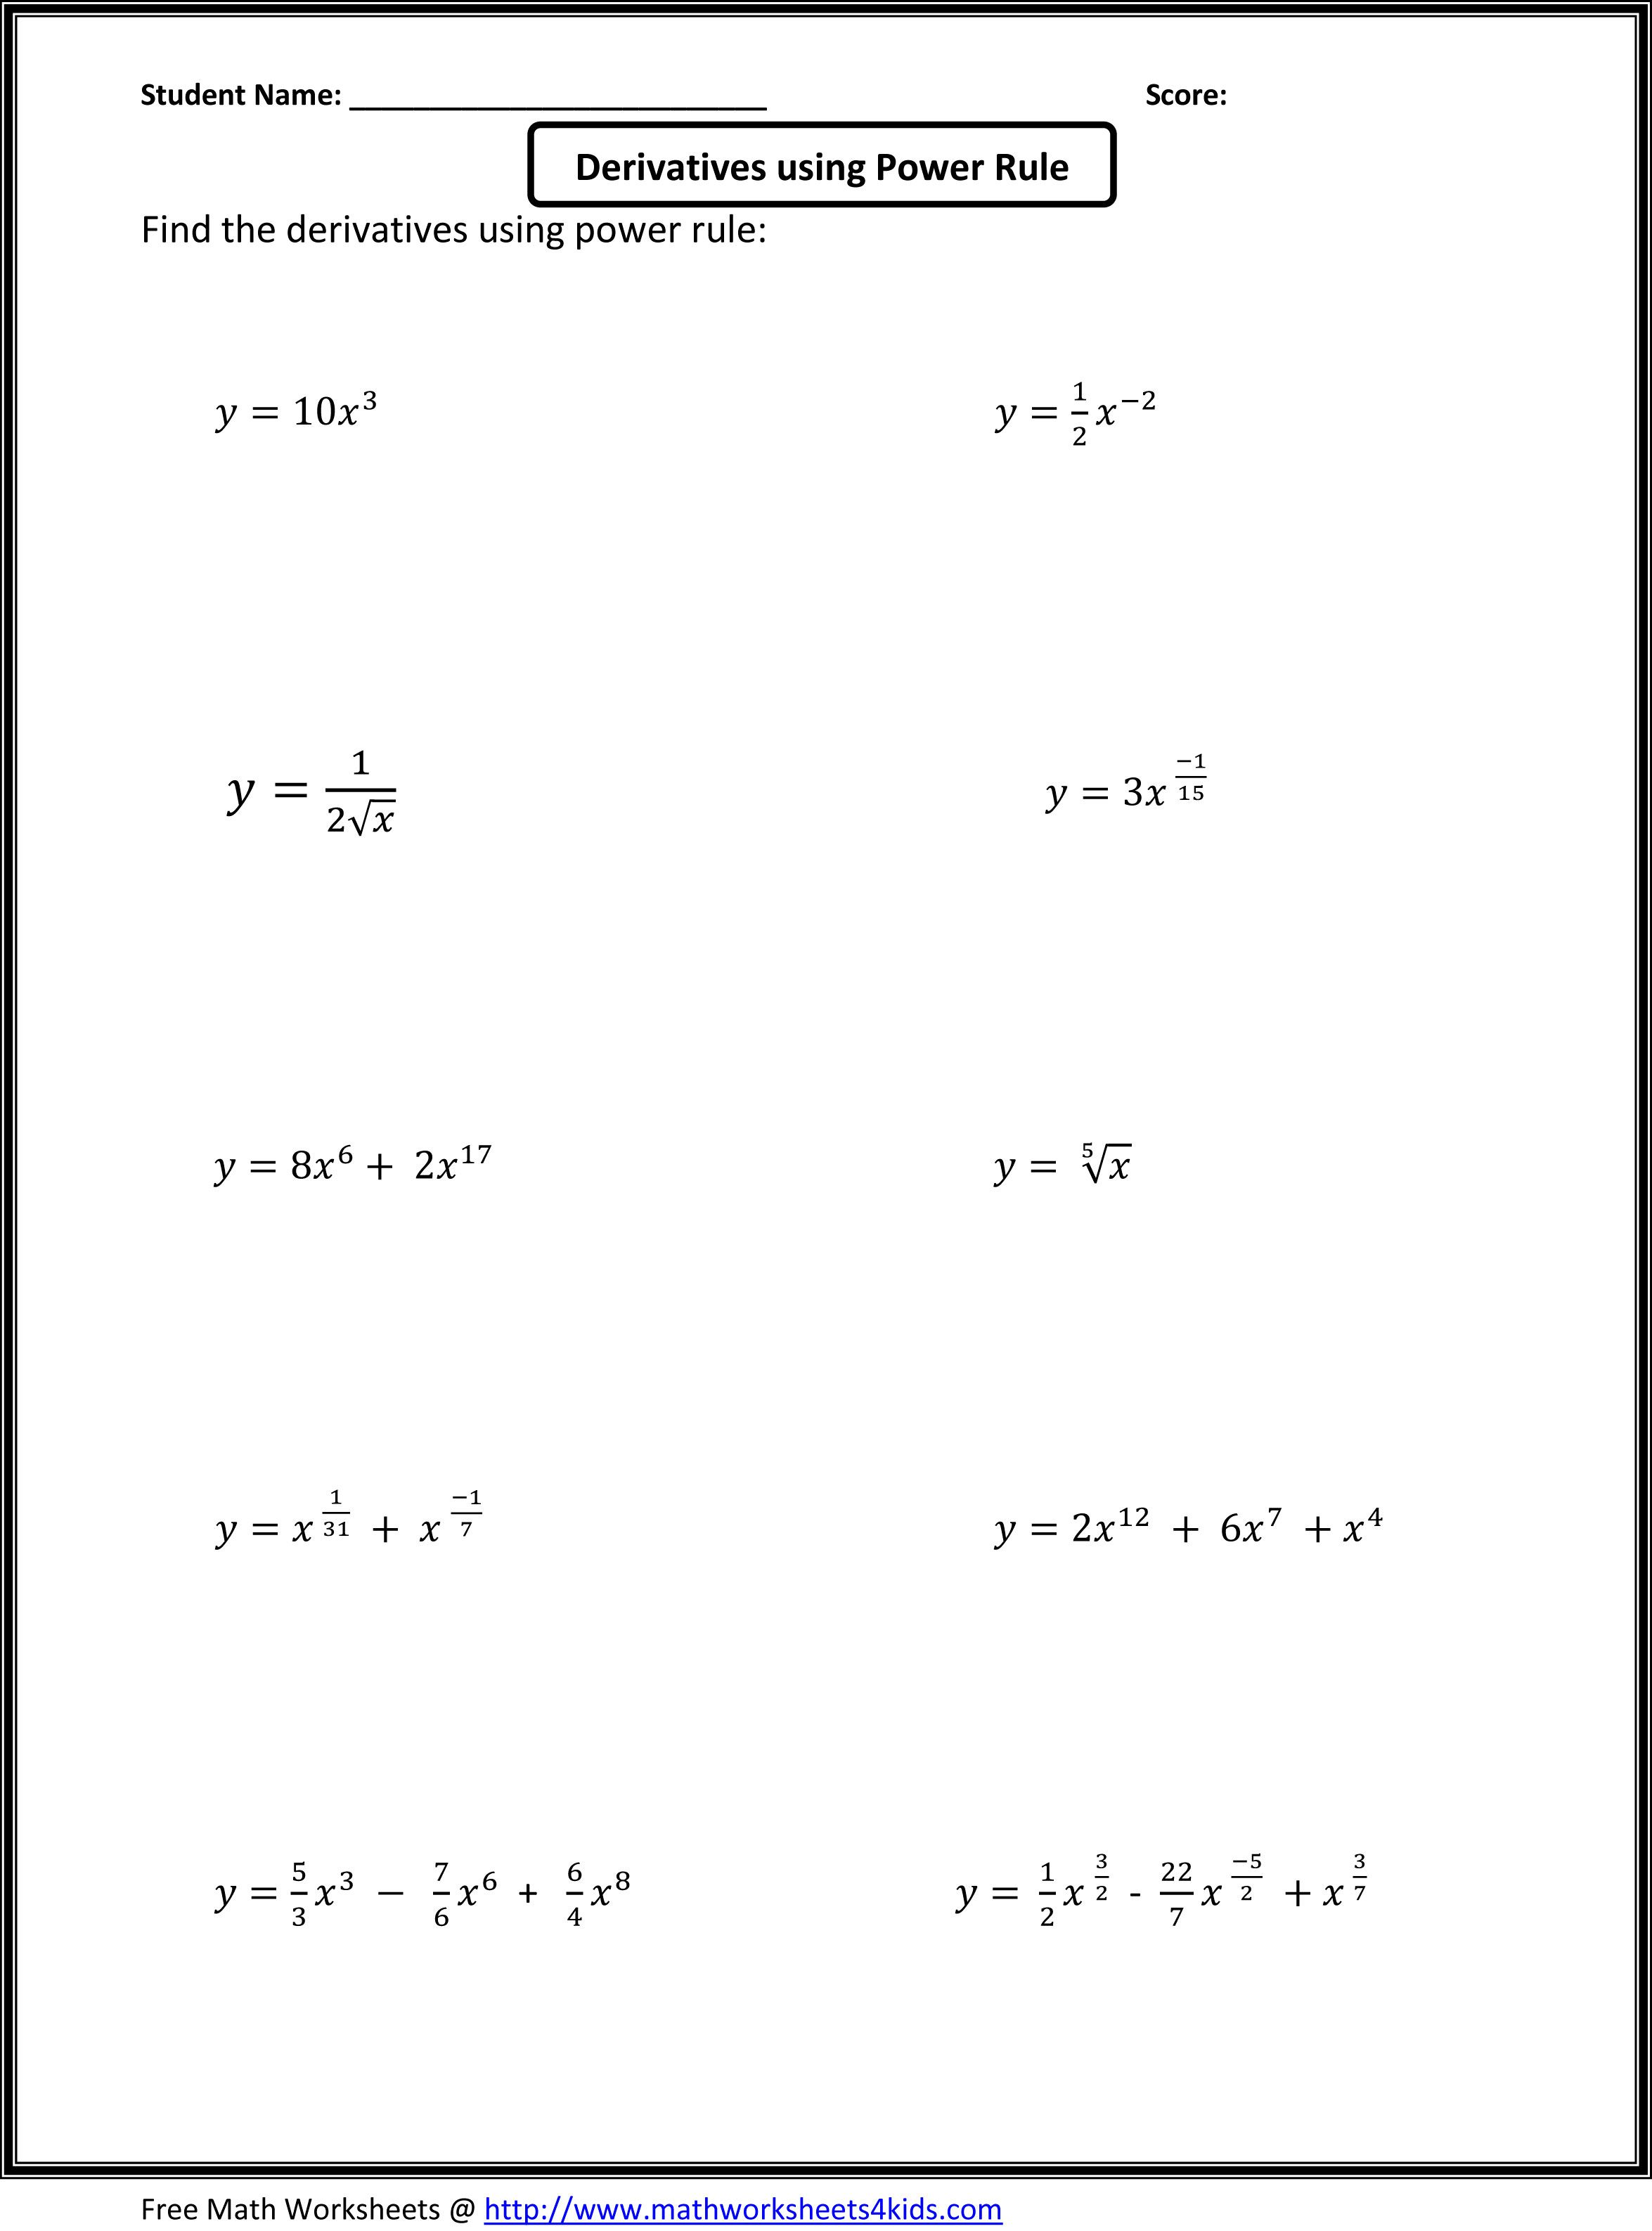 Worksheets Basic College Math Worksheets basic calculus worksheets for higher grade students teaching ap calculusmaths algebracollege